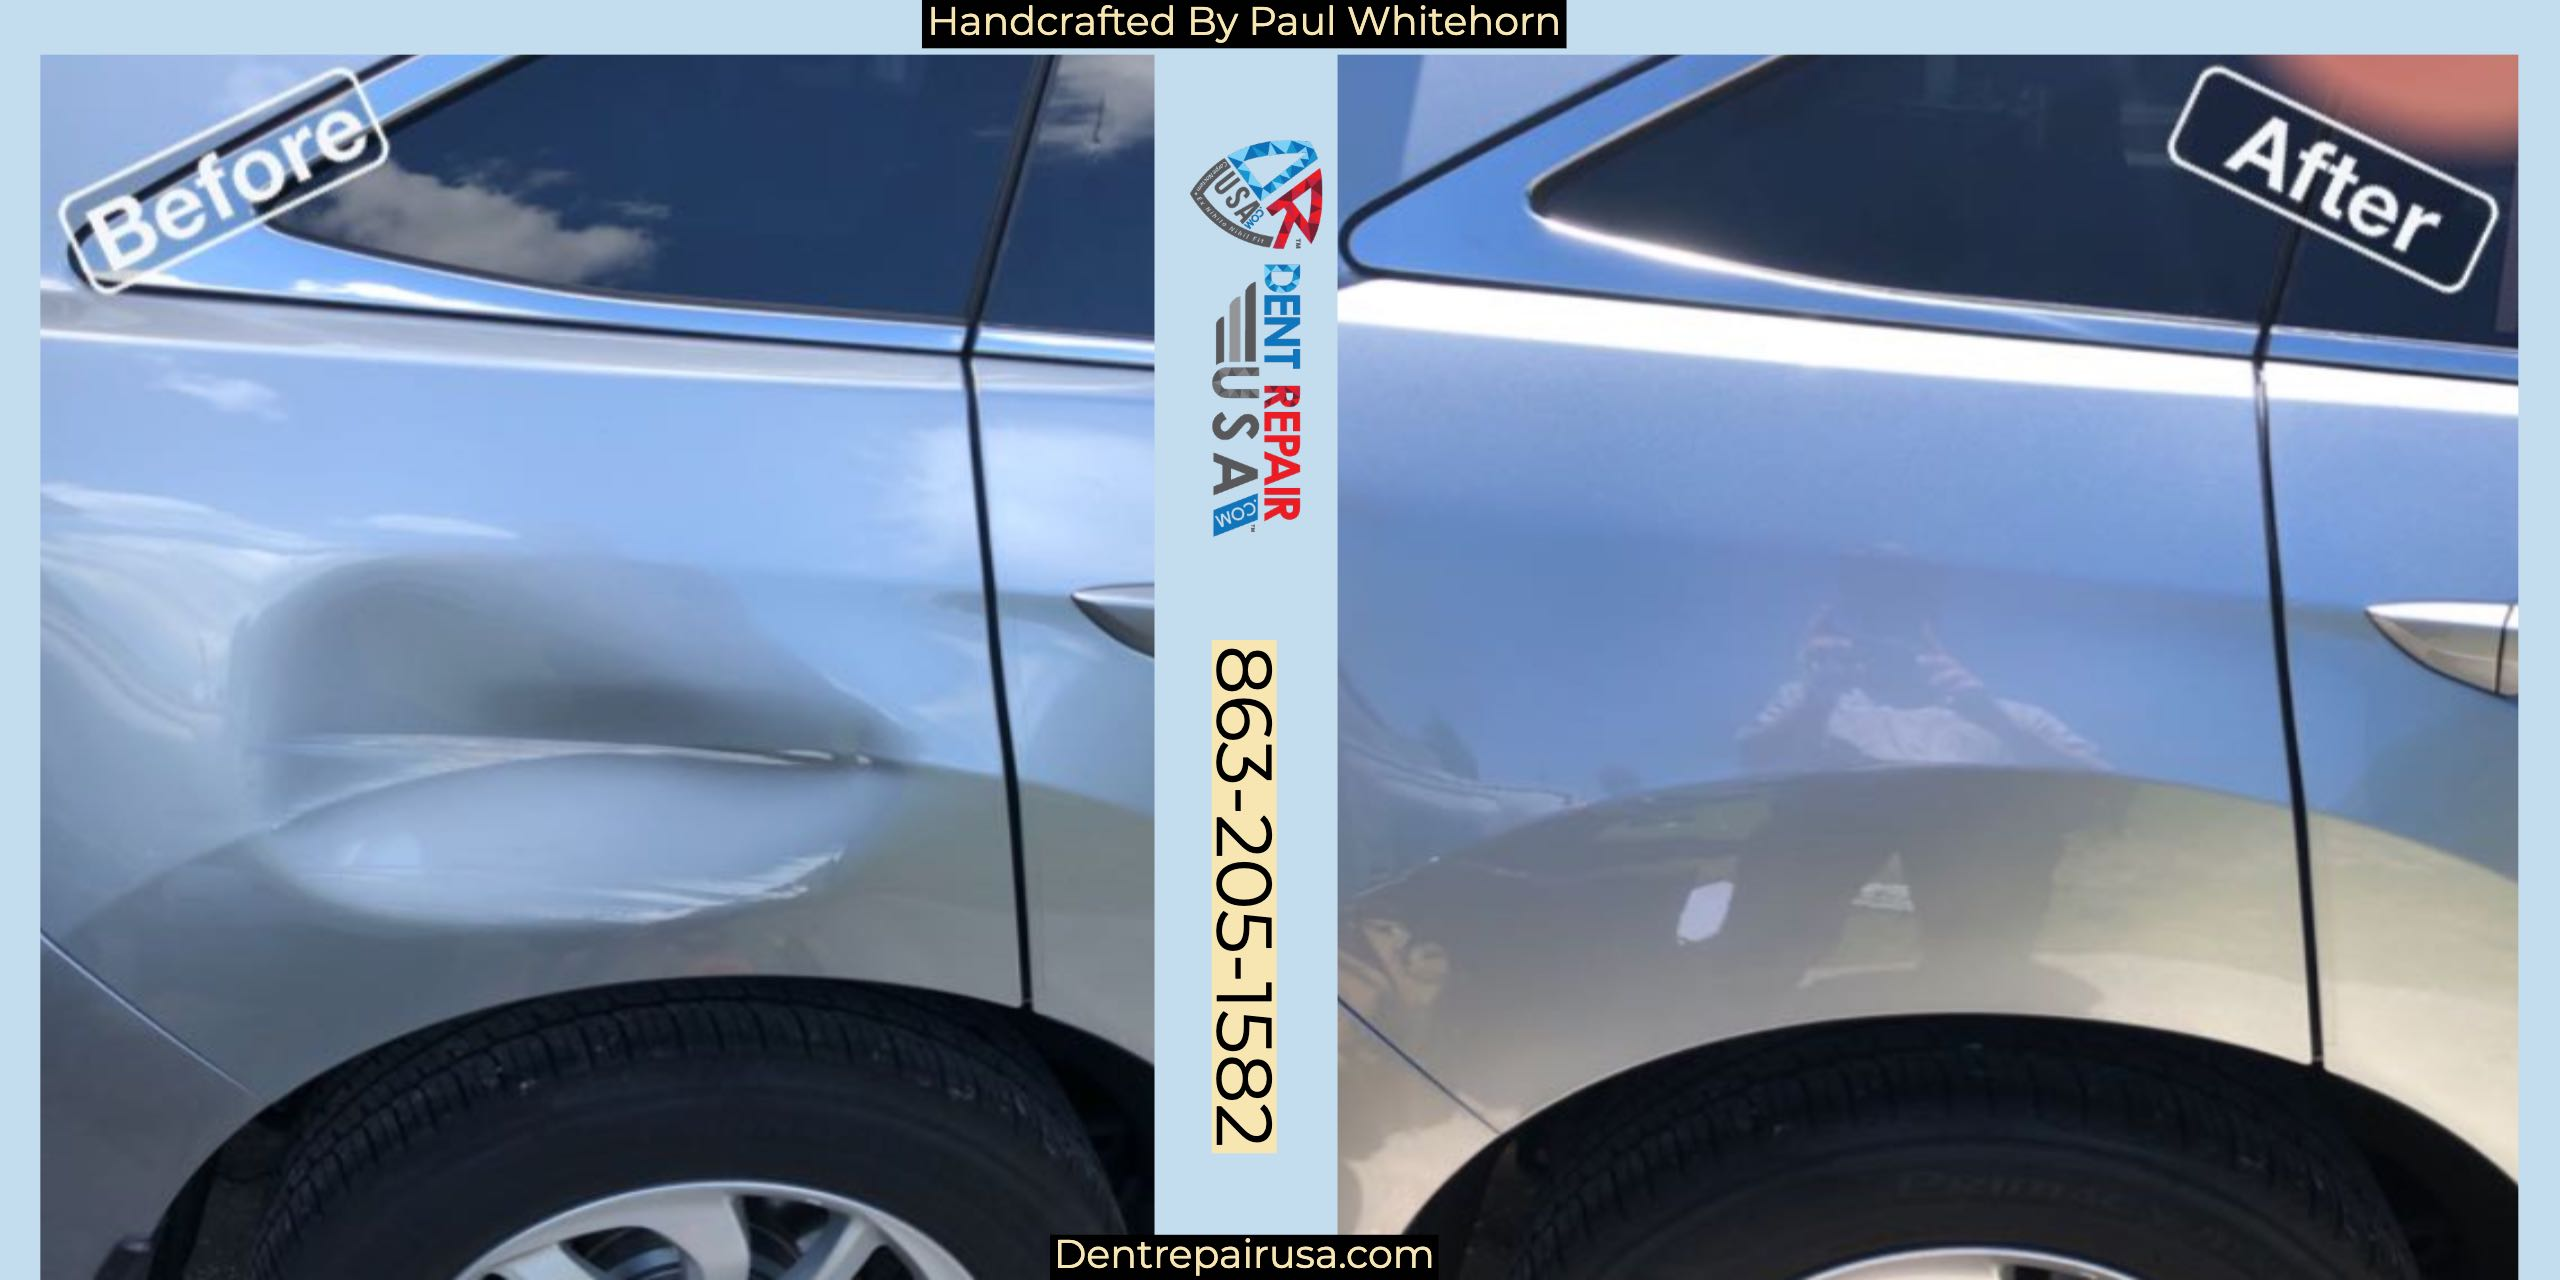 A Mobile Dent Repair In Lakeland Florida